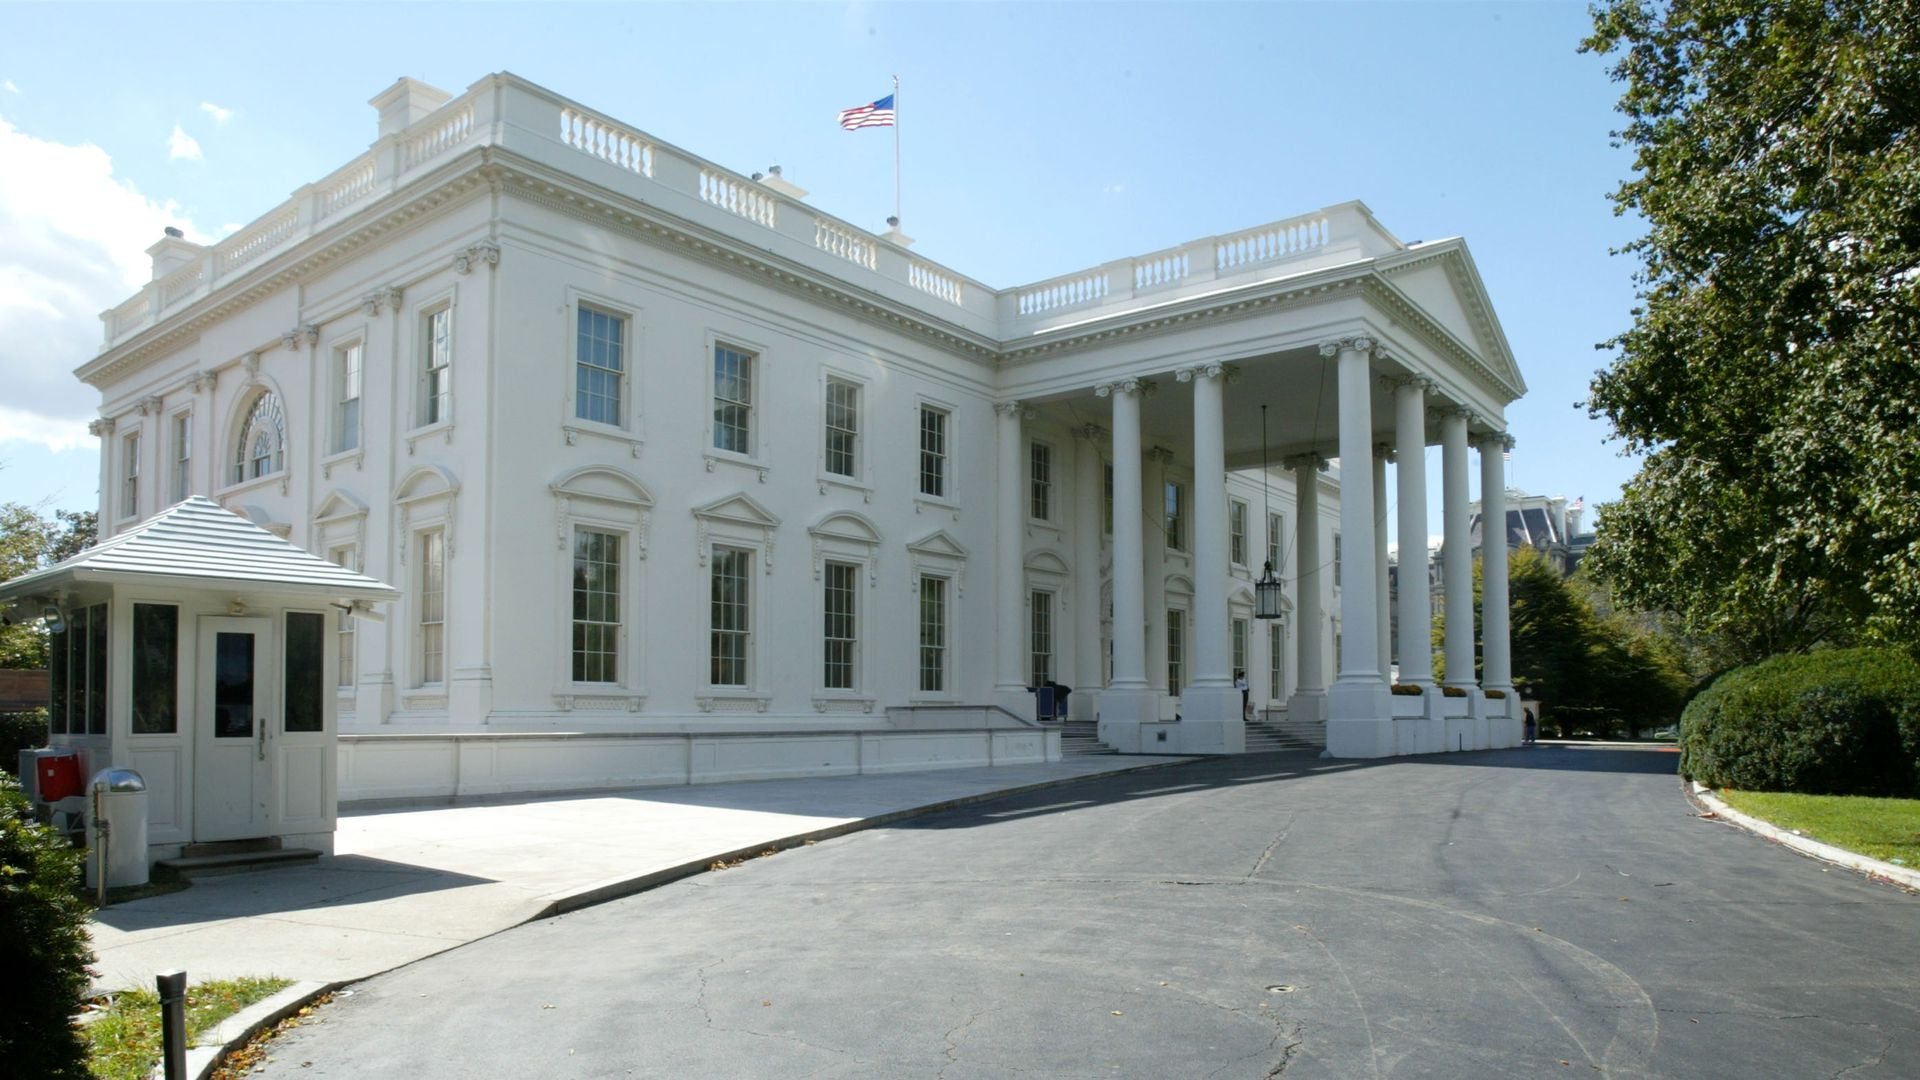 The exterior of the White House building.